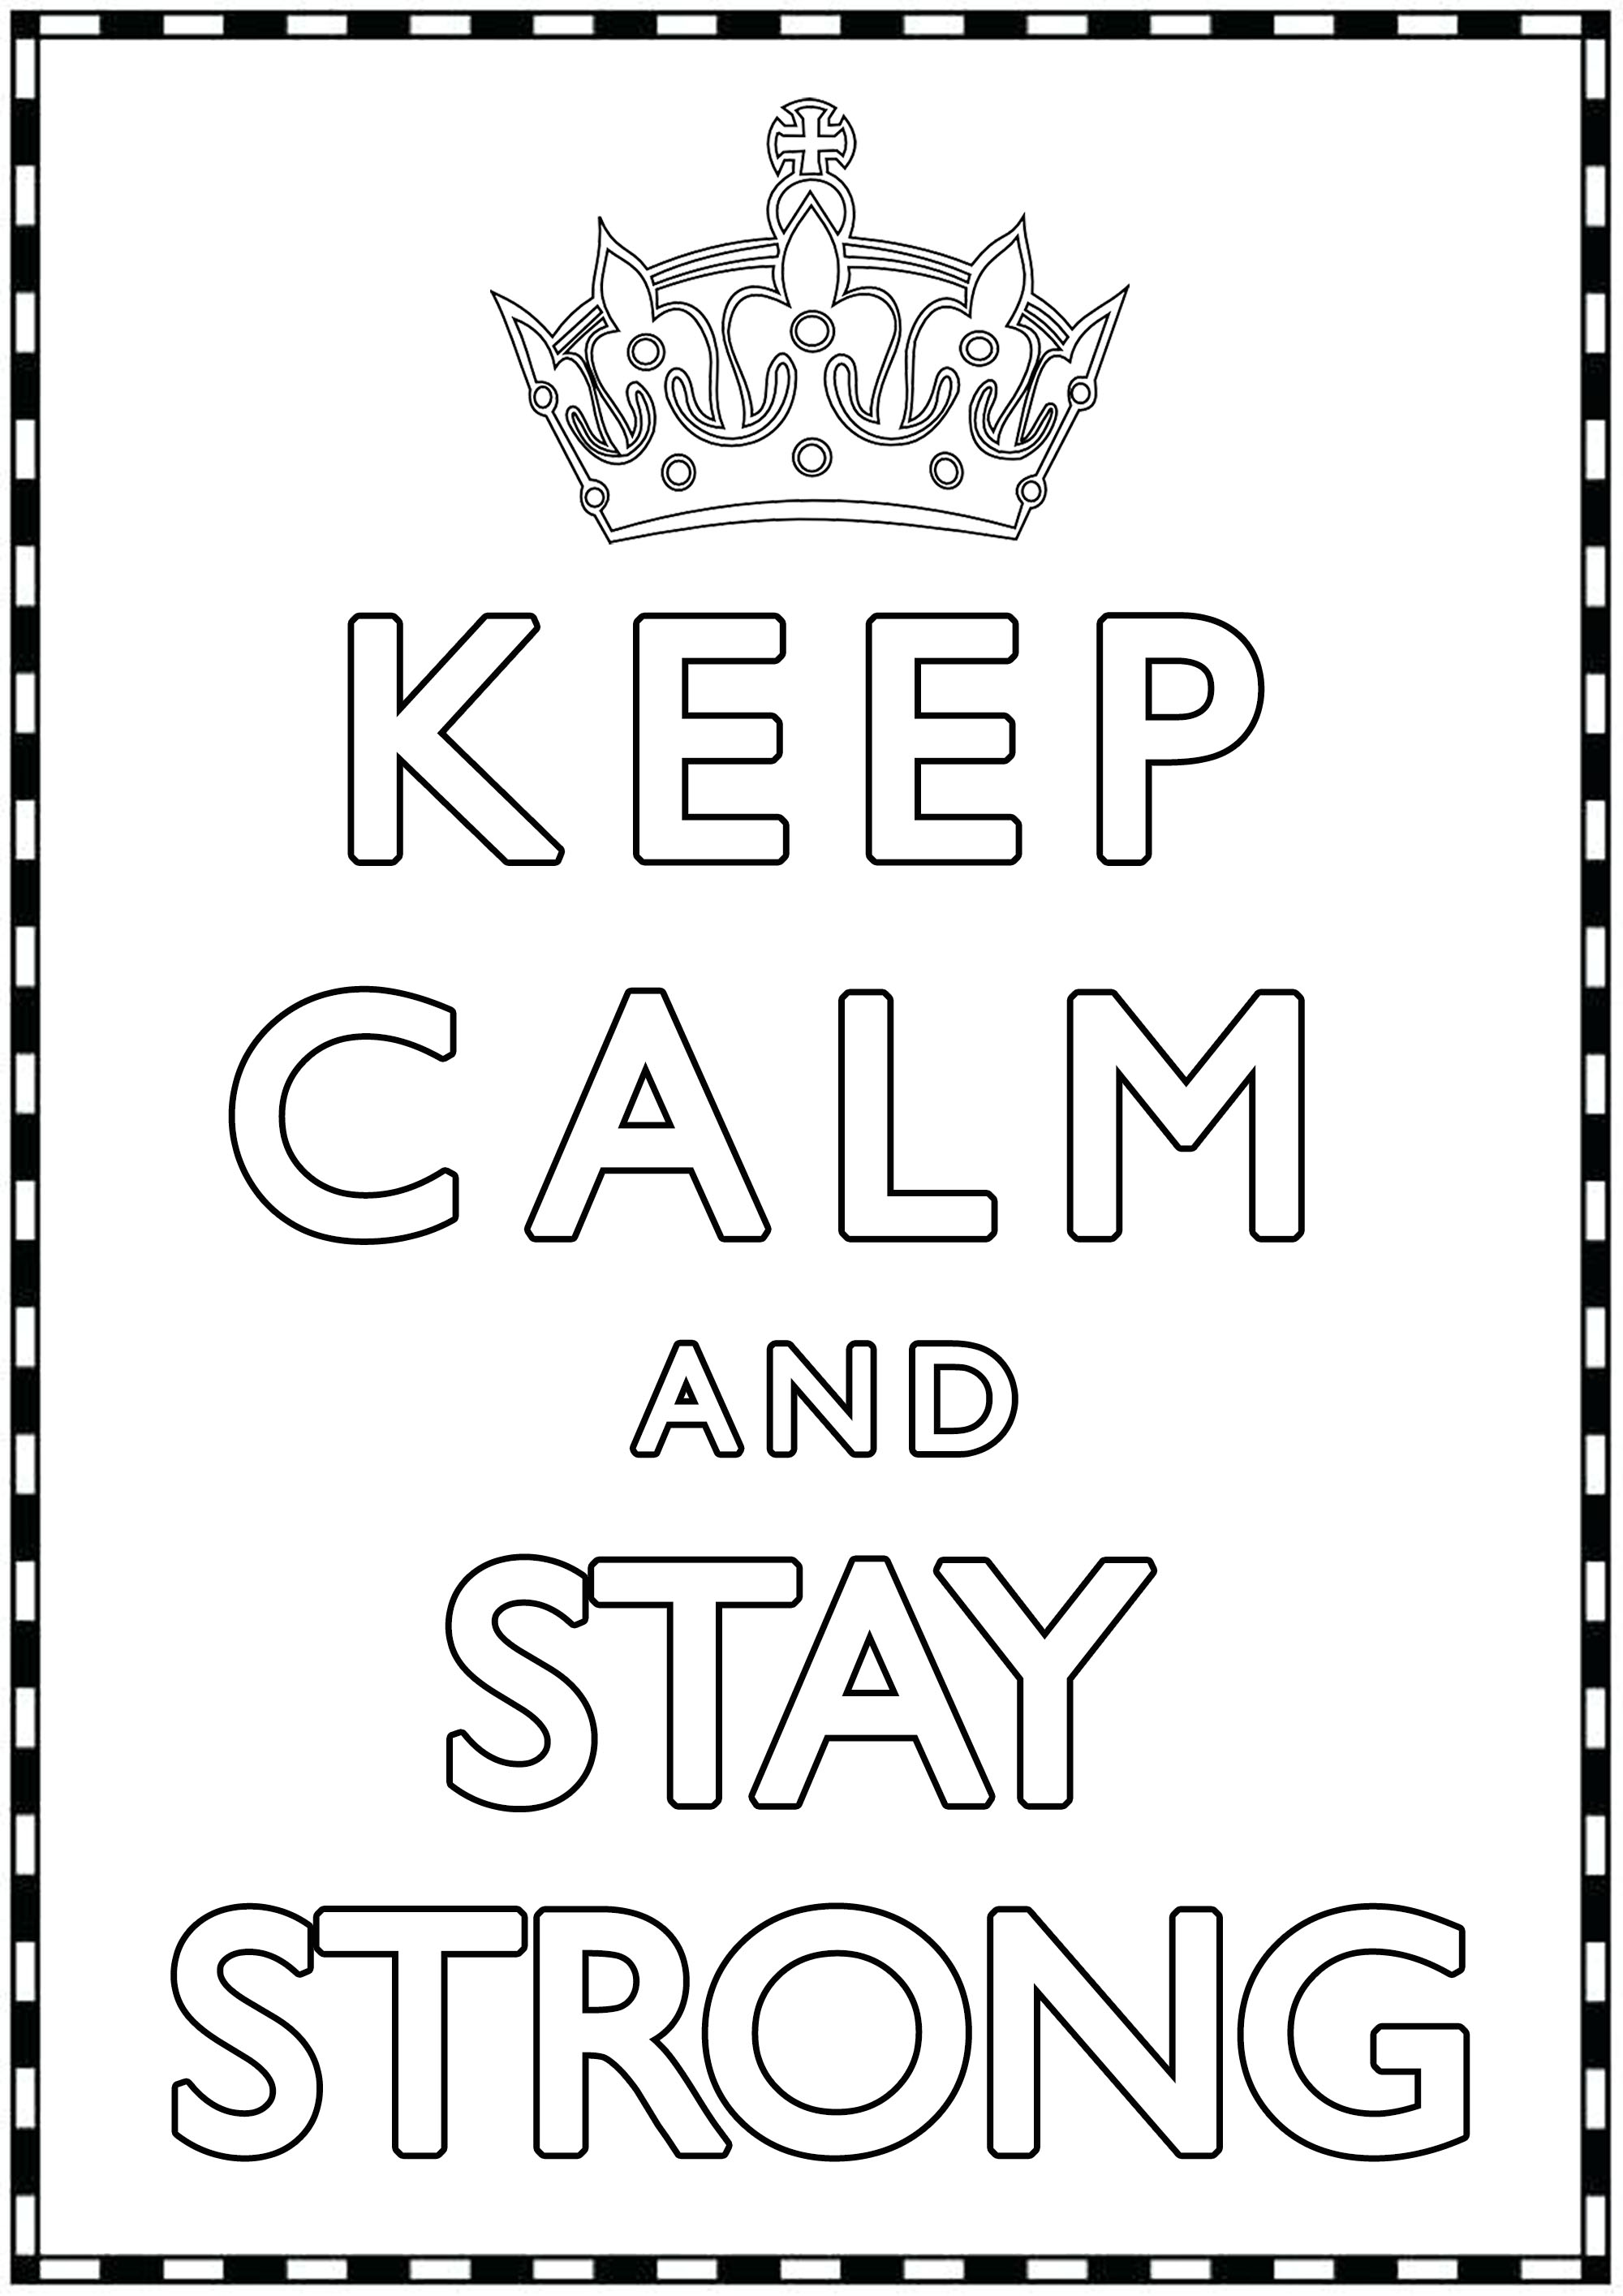 Keep Calm and stay Strong : A crown and cute border. No details in the background.